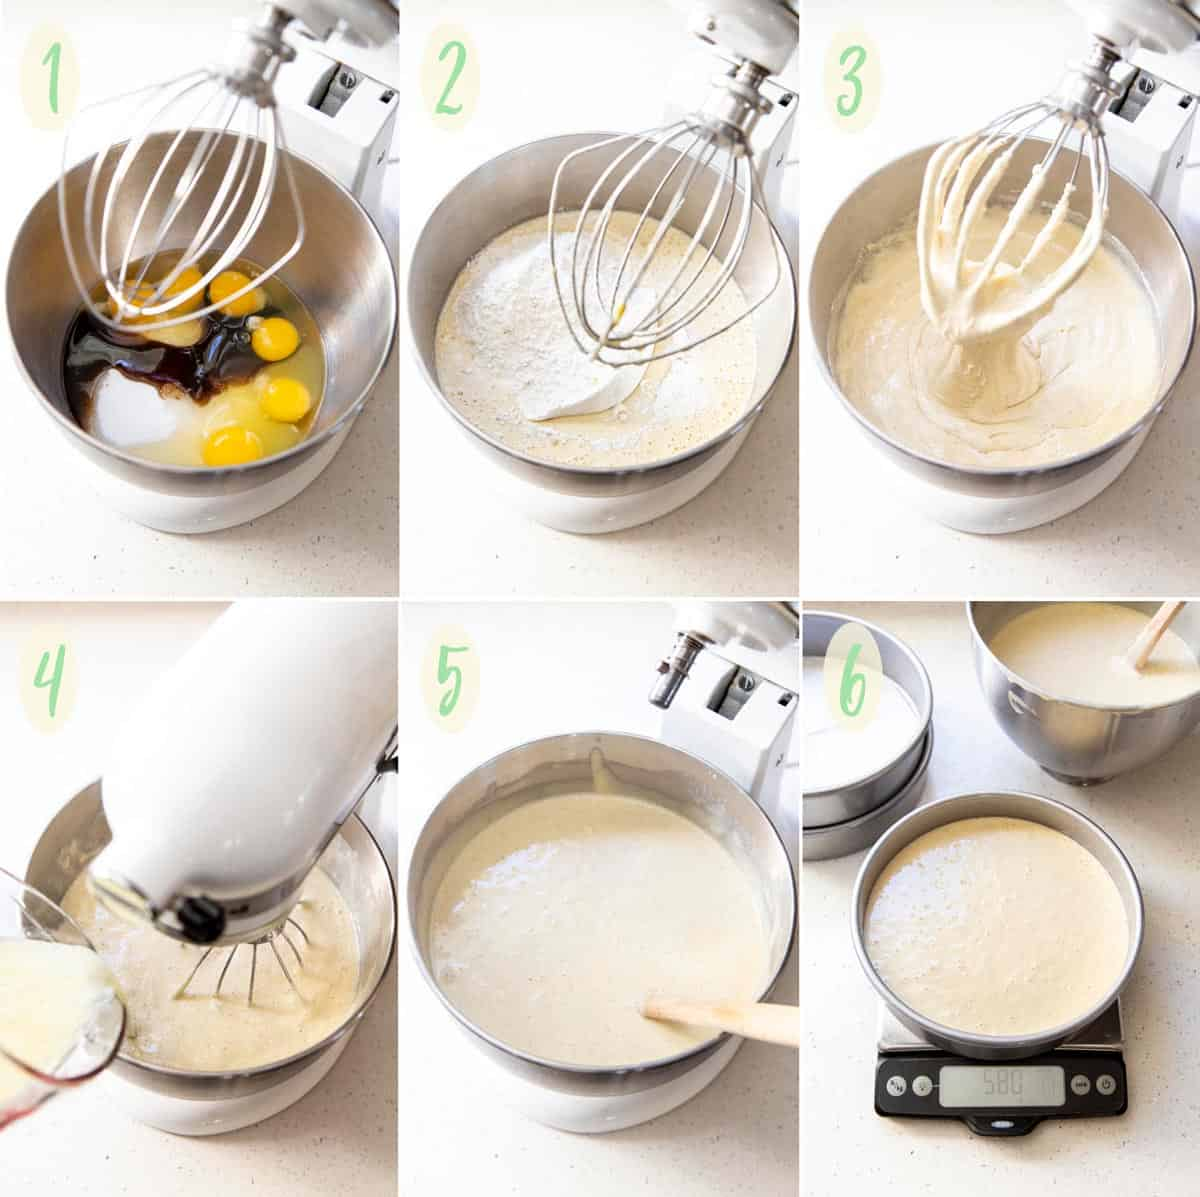 Collage of 6 photos showing how to make the vanilla cake batter